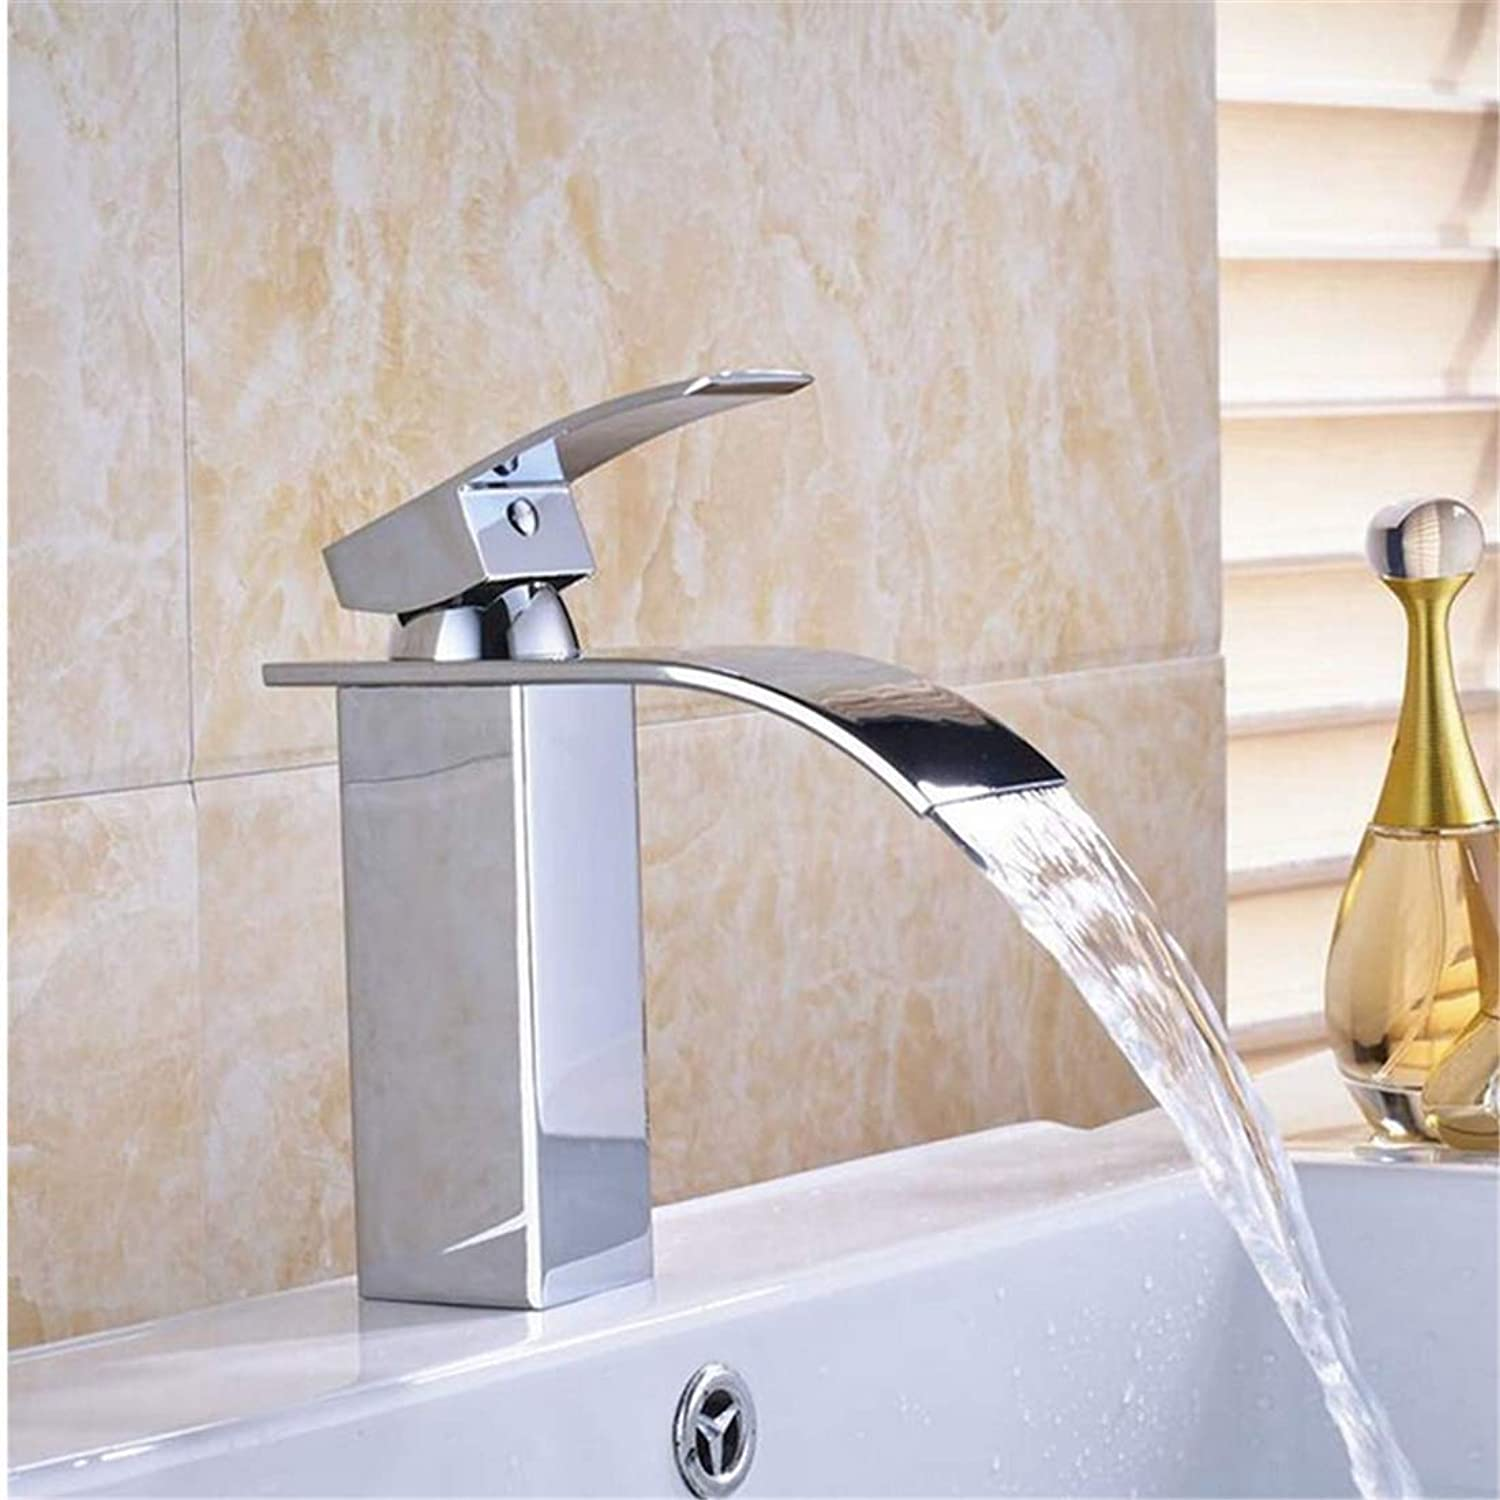 Retro Faucetwaterfall Spout Faucet Single Lever Countertop Vessel Sink Tap